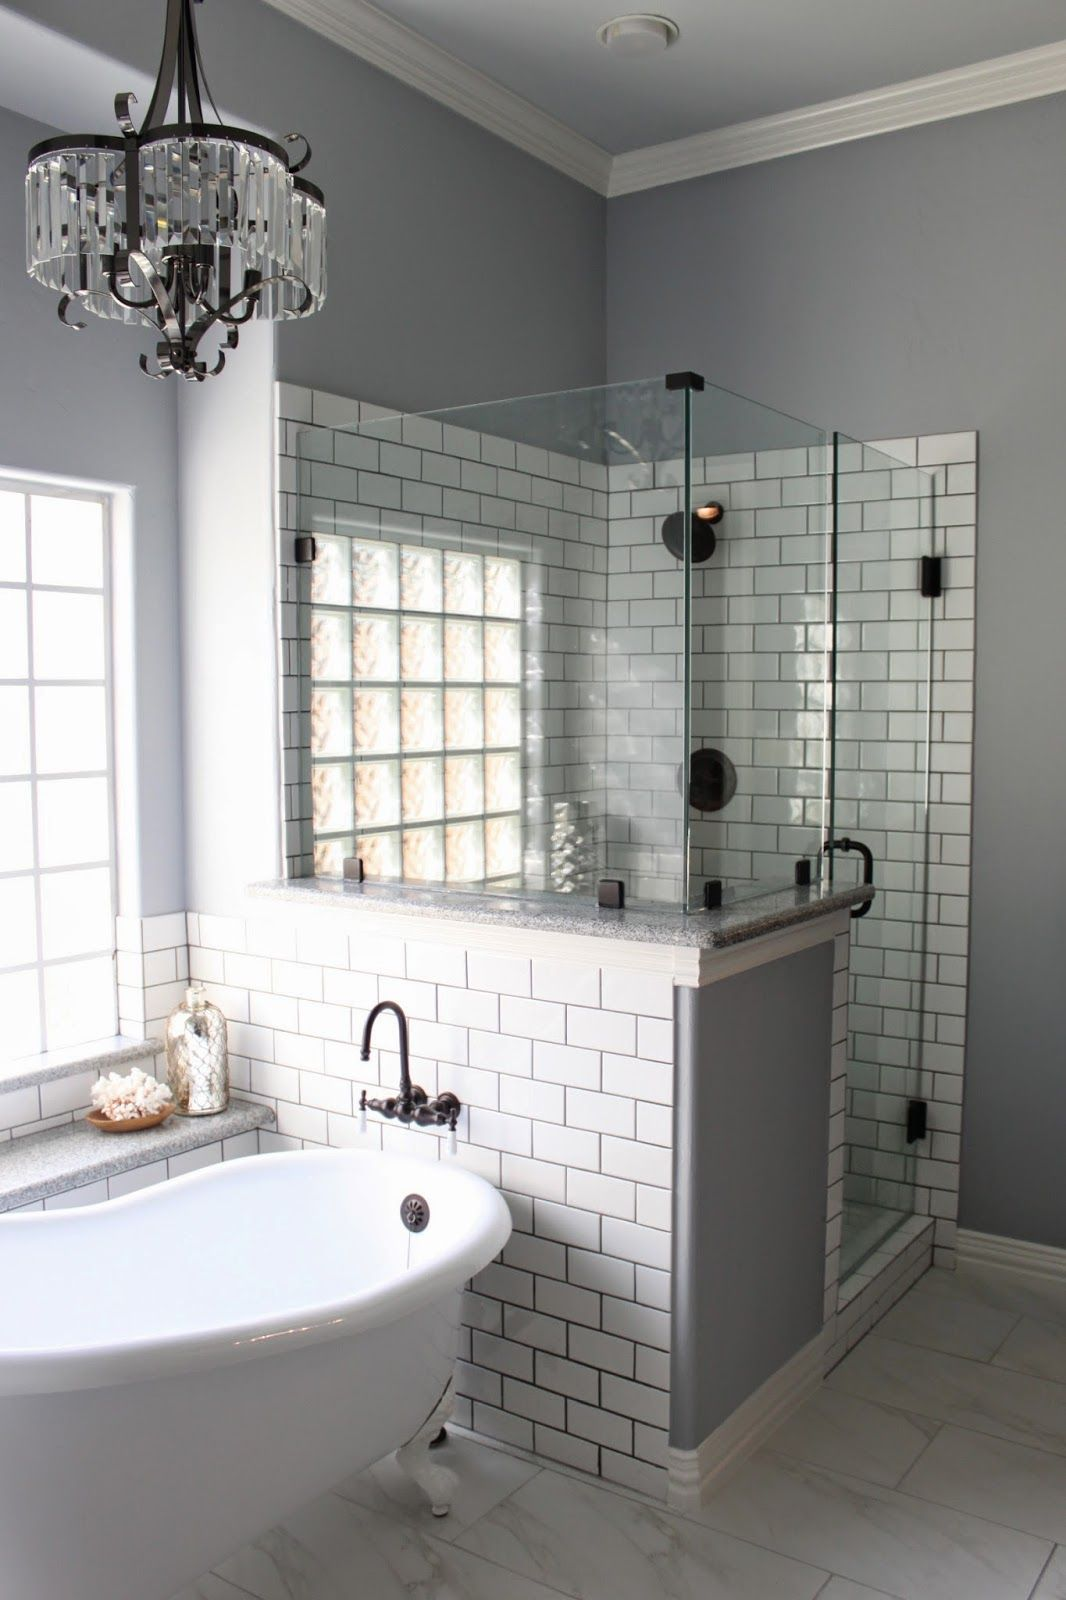 Gray White Bathroom Tile Master Bath Remodel Grey Grout White Subway Tiles And Grout